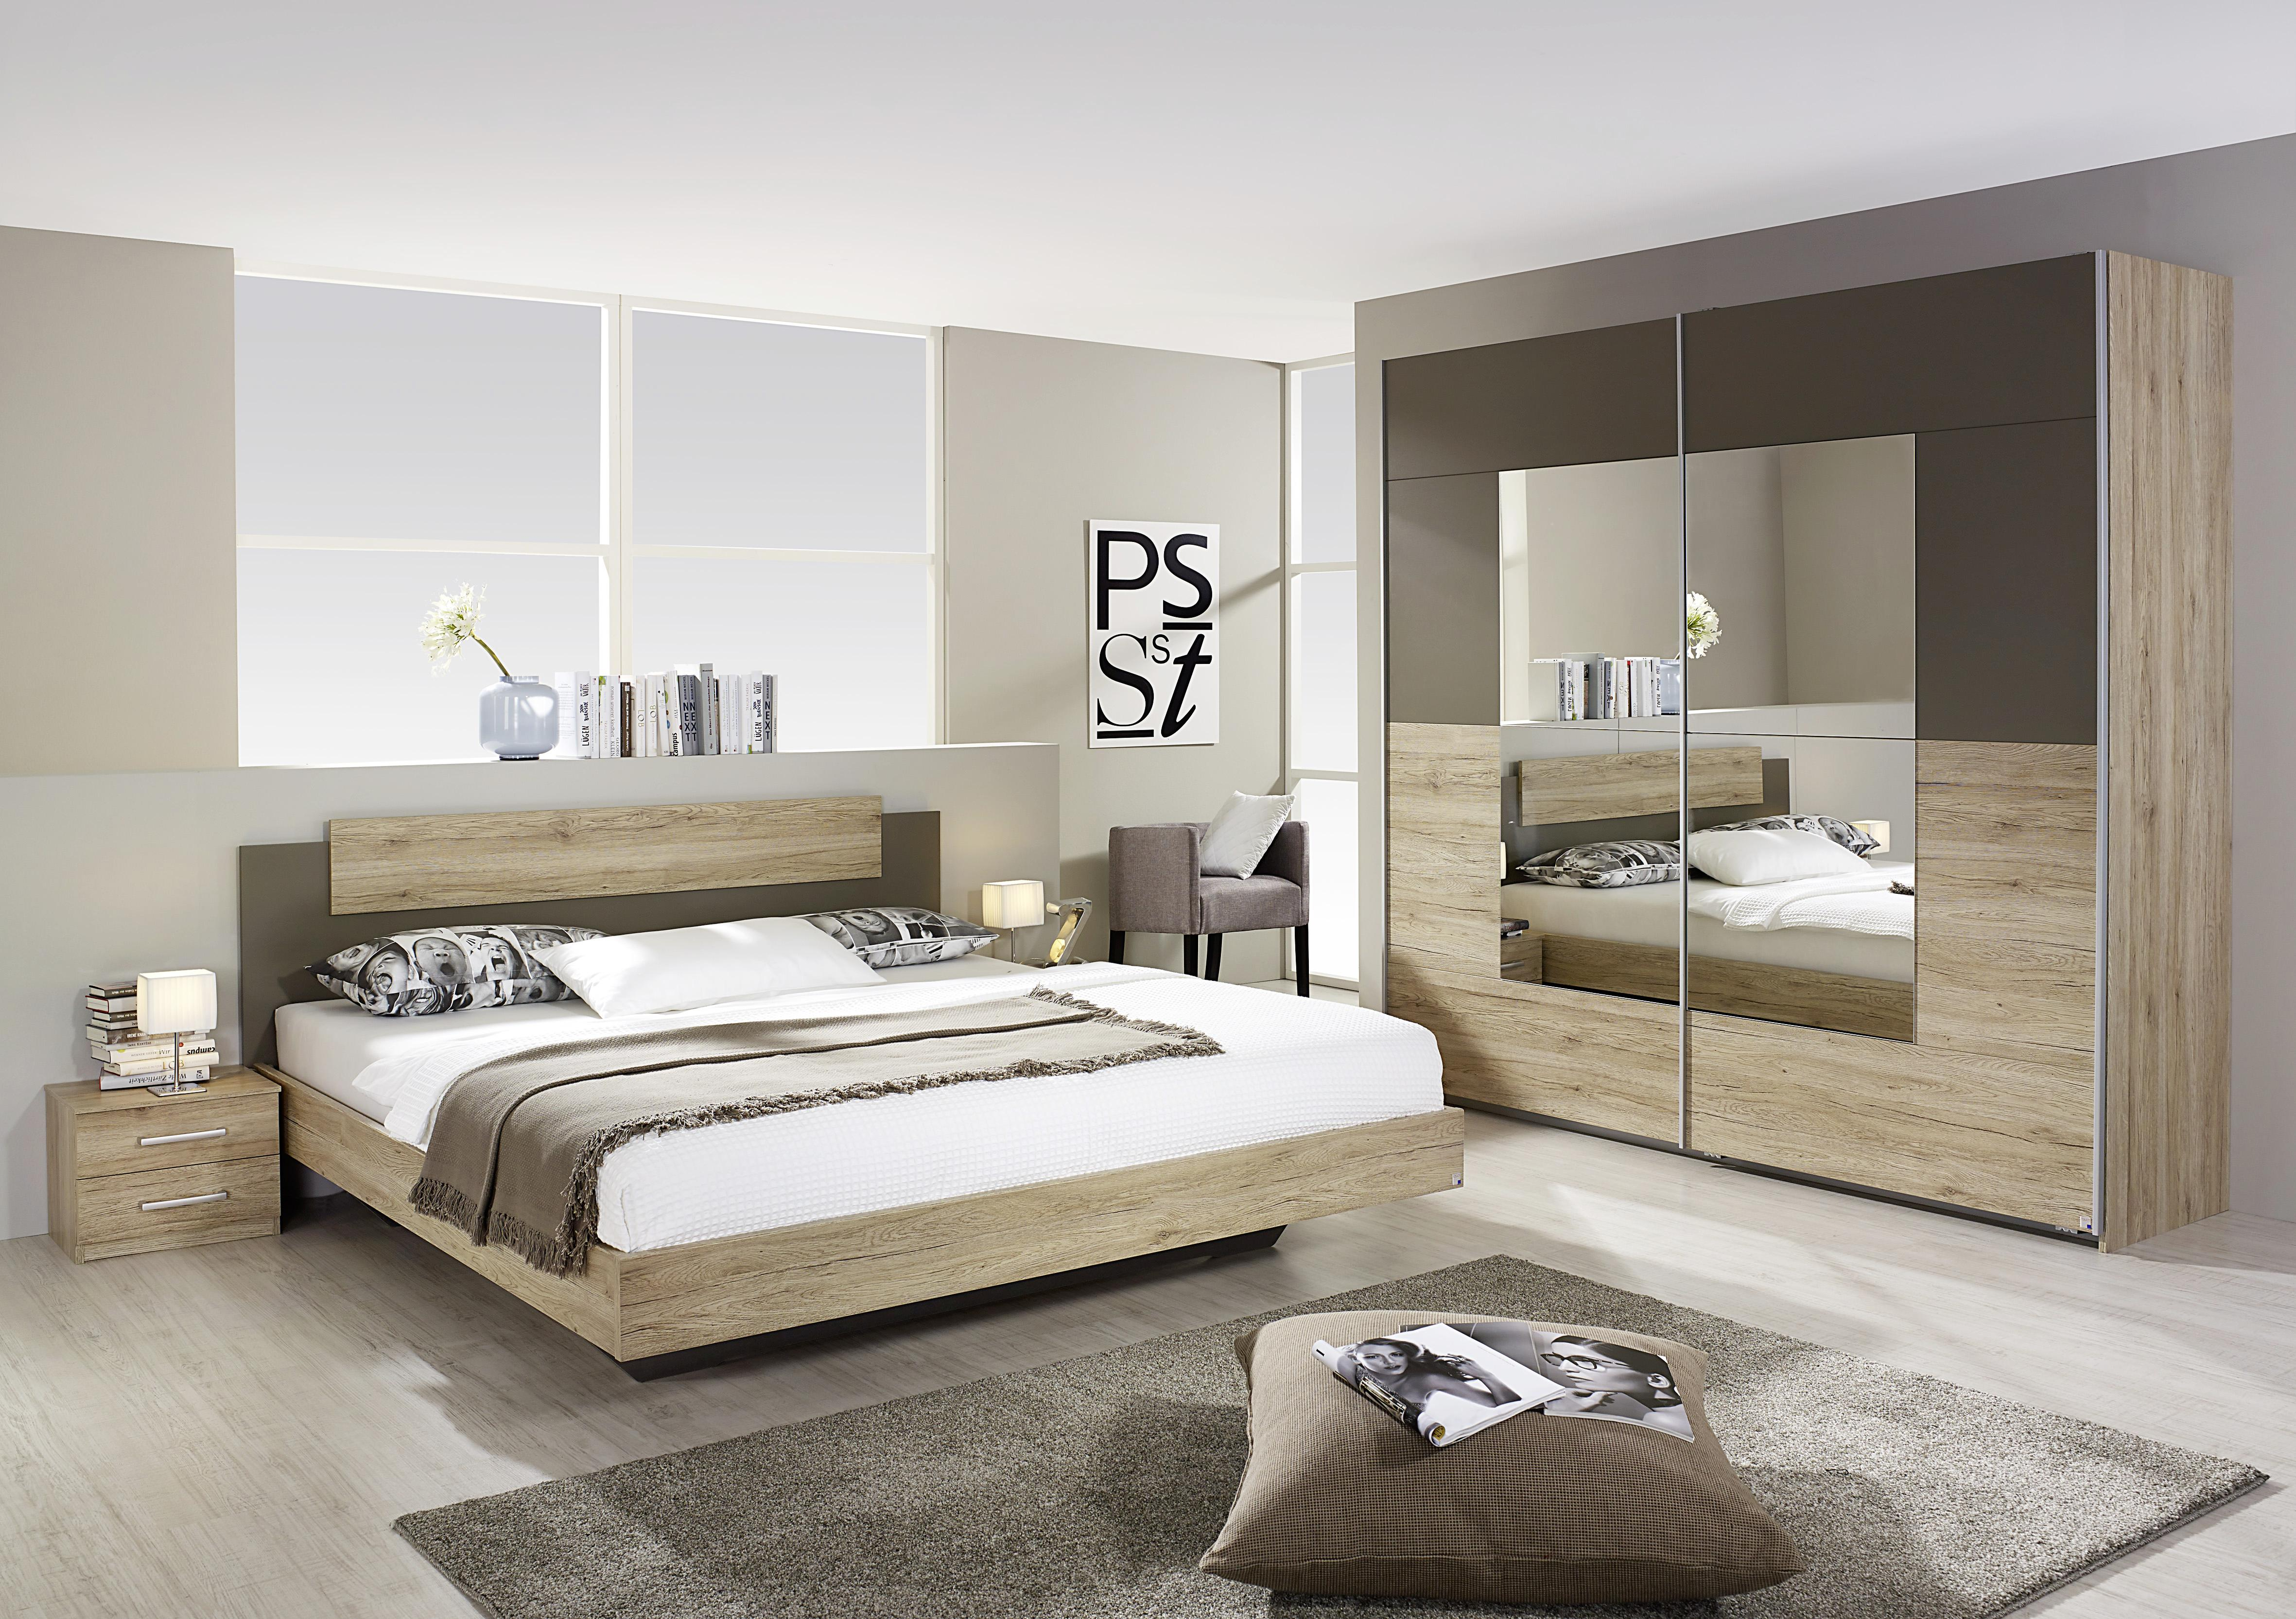 slaapkamer issa meubelen voor thuis salons eetkamers slaapkamers relaxen bedden. Black Bedroom Furniture Sets. Home Design Ideas